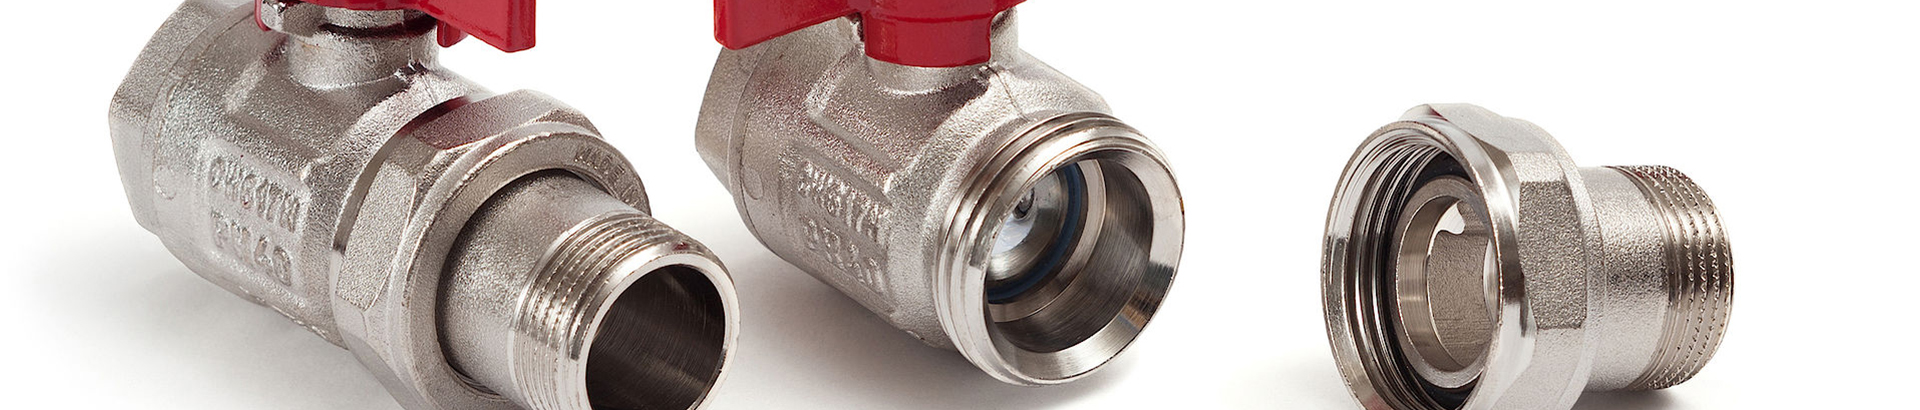 Global Industrial Valve Opportunity Analysis and Industry Forecast